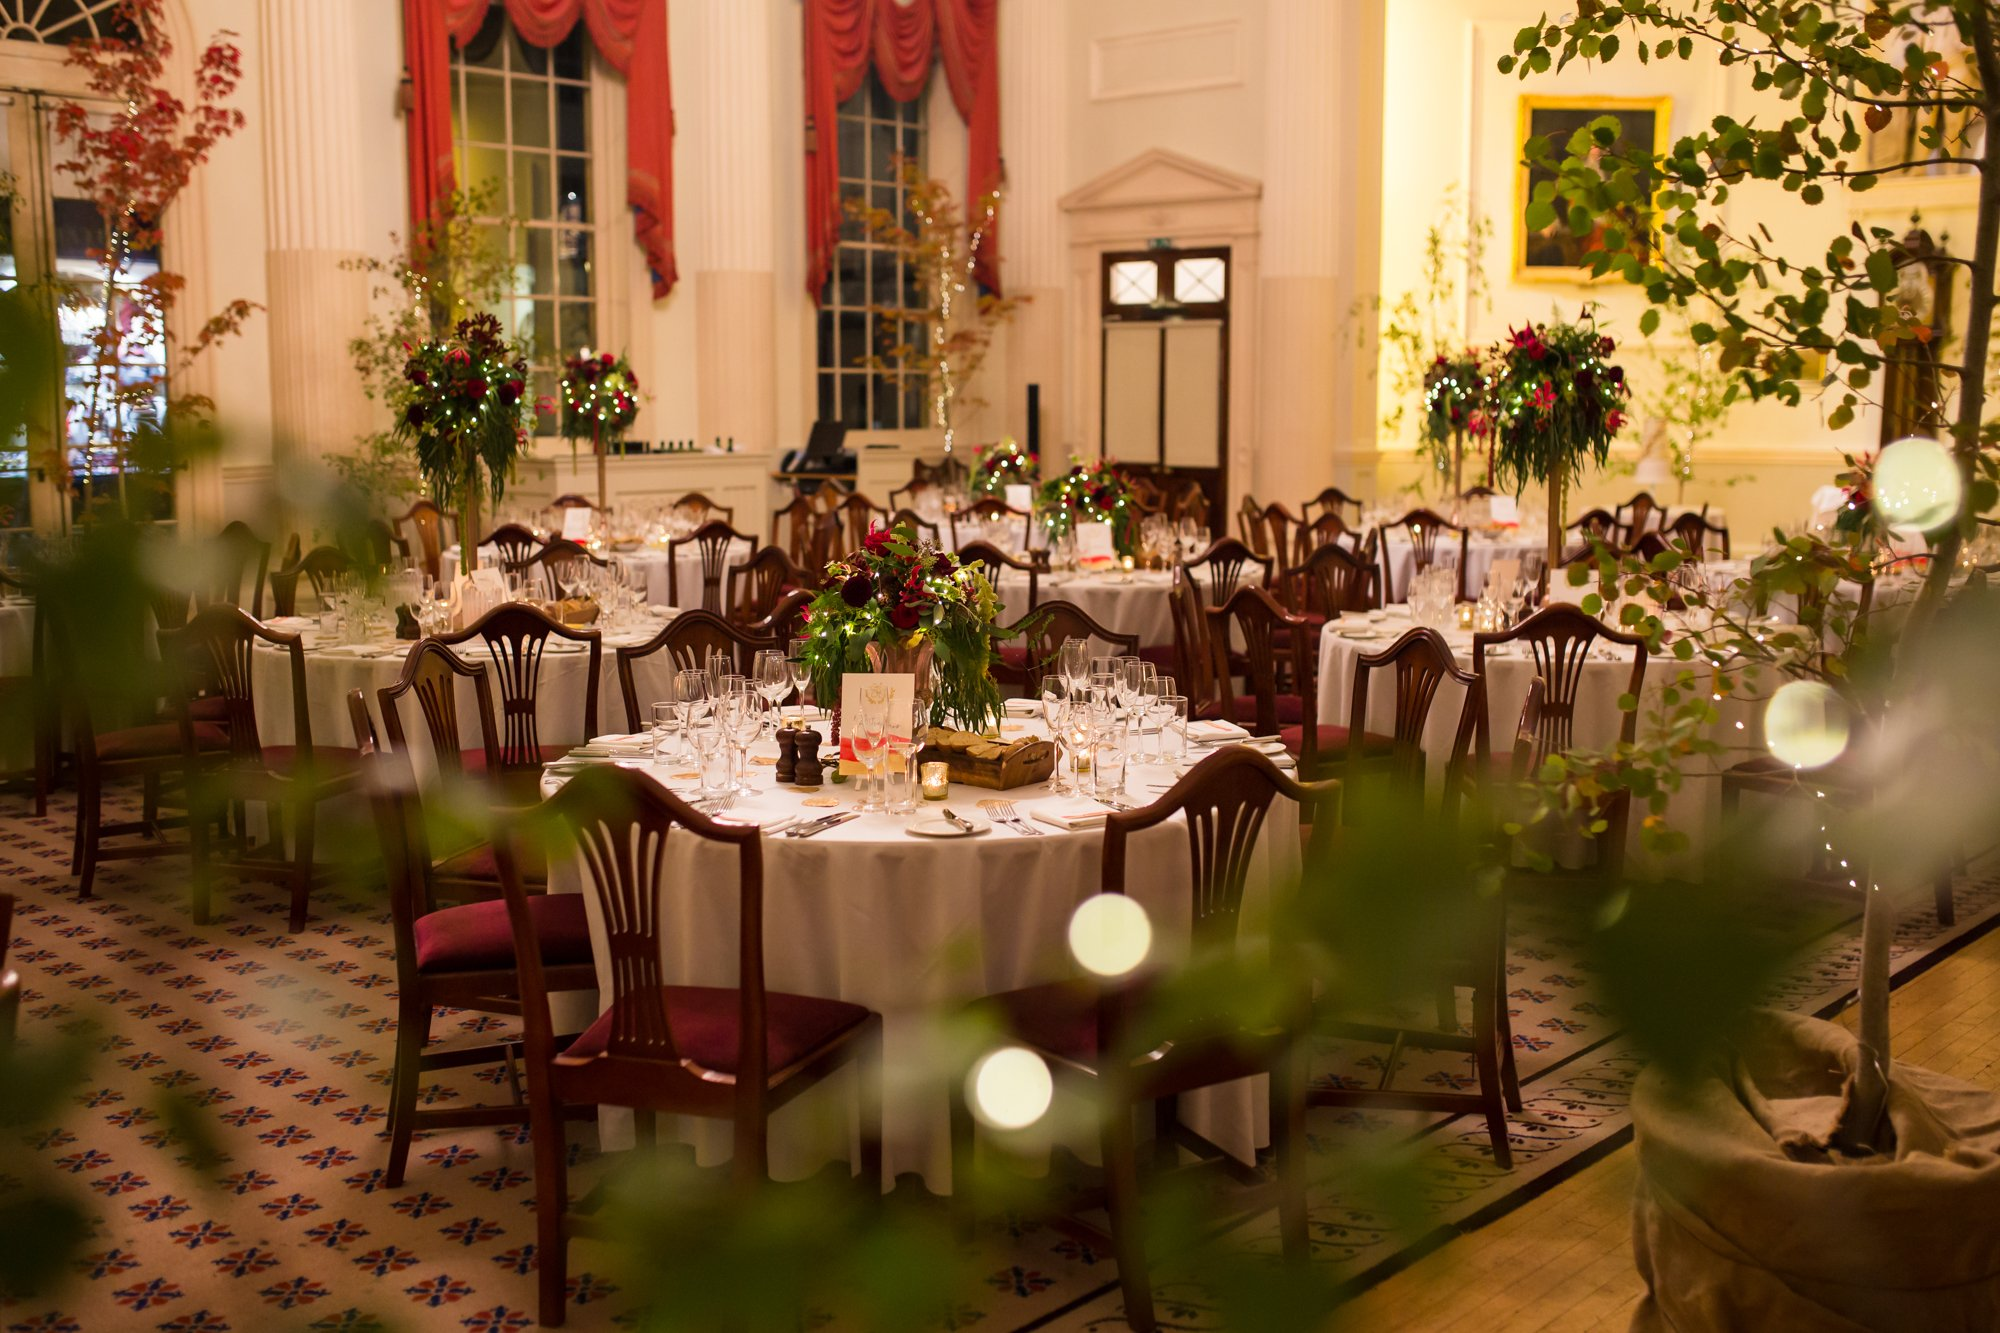 The Roman Baths, The Pump Room, The Wilde Bunch, Indian wedding photographers,